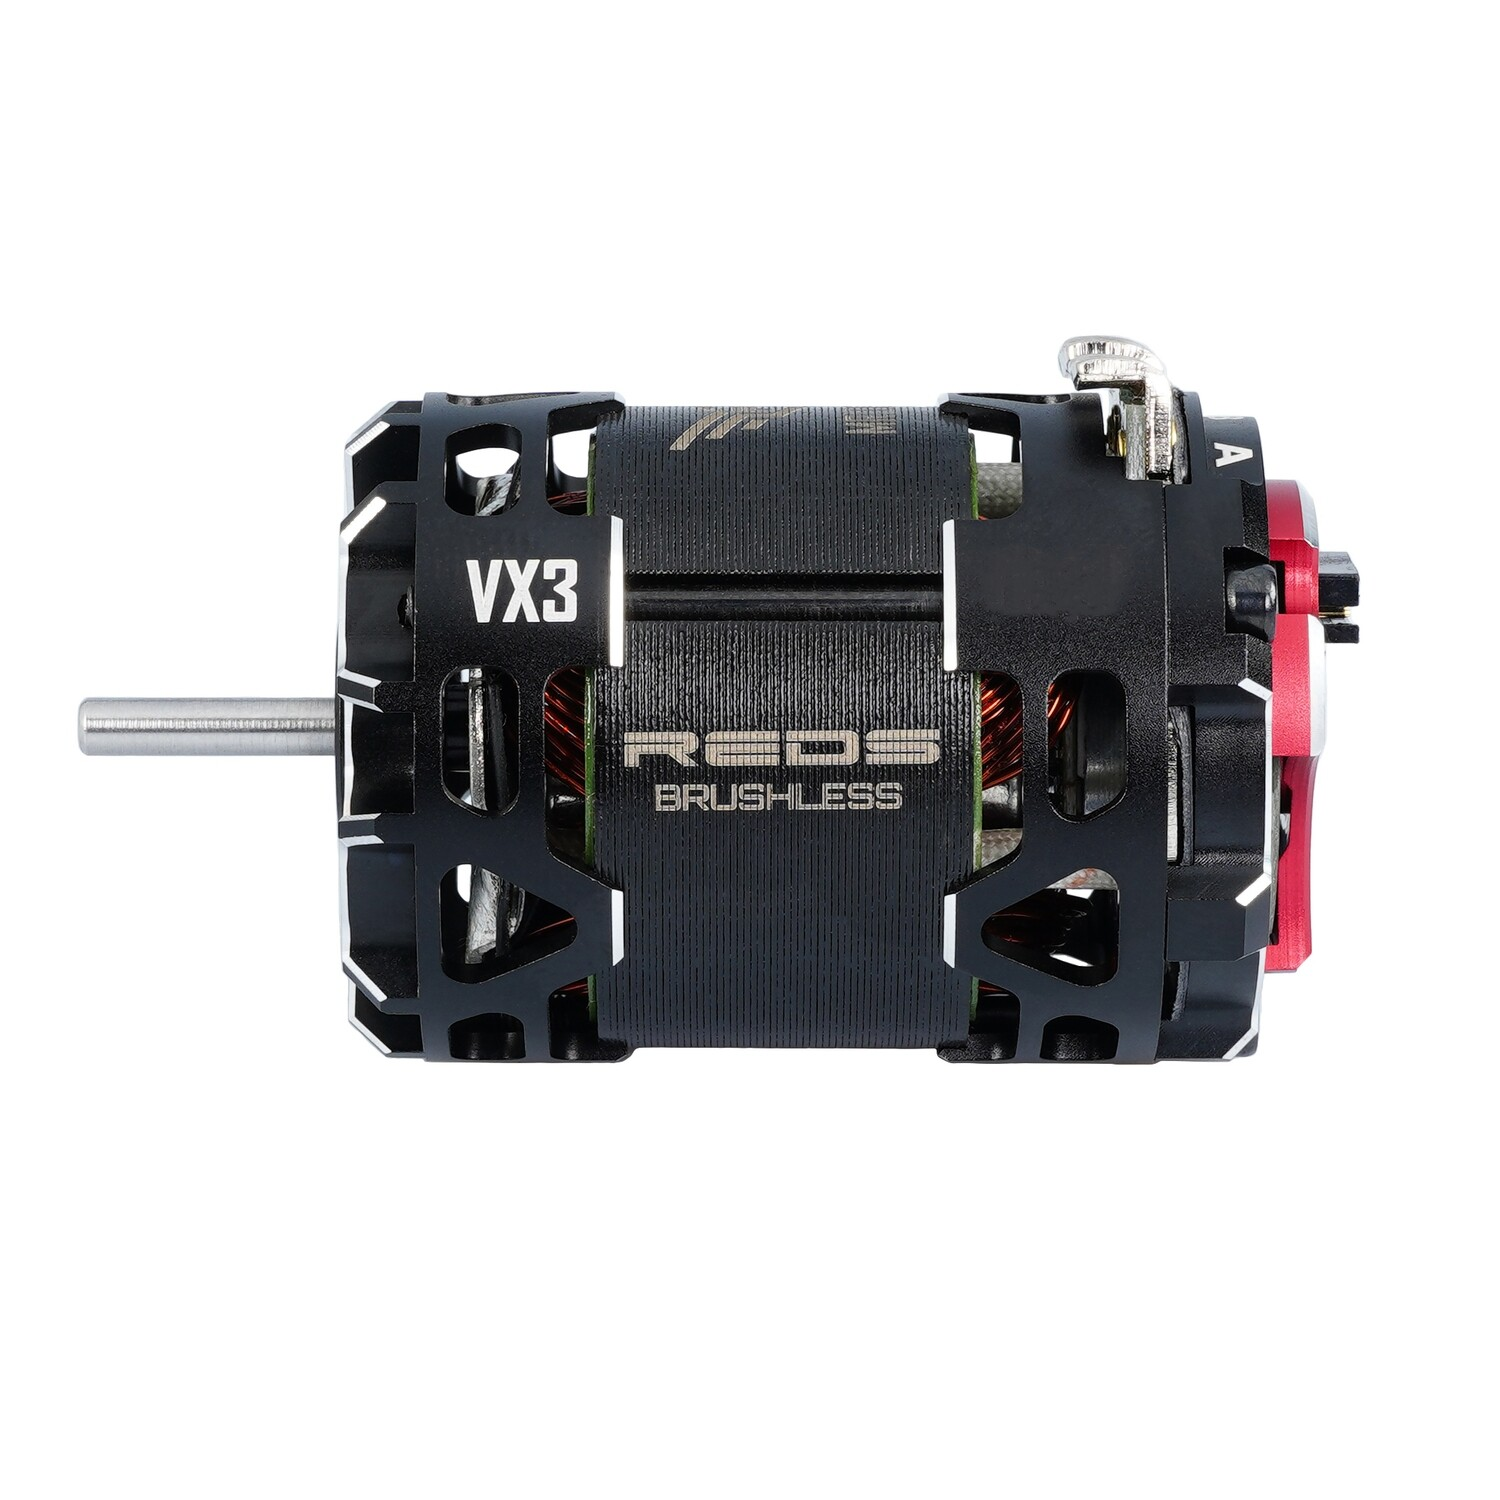 BRUSHLESS MOTOR REDS VX3 540 8.5T 2 POLE SENSORED